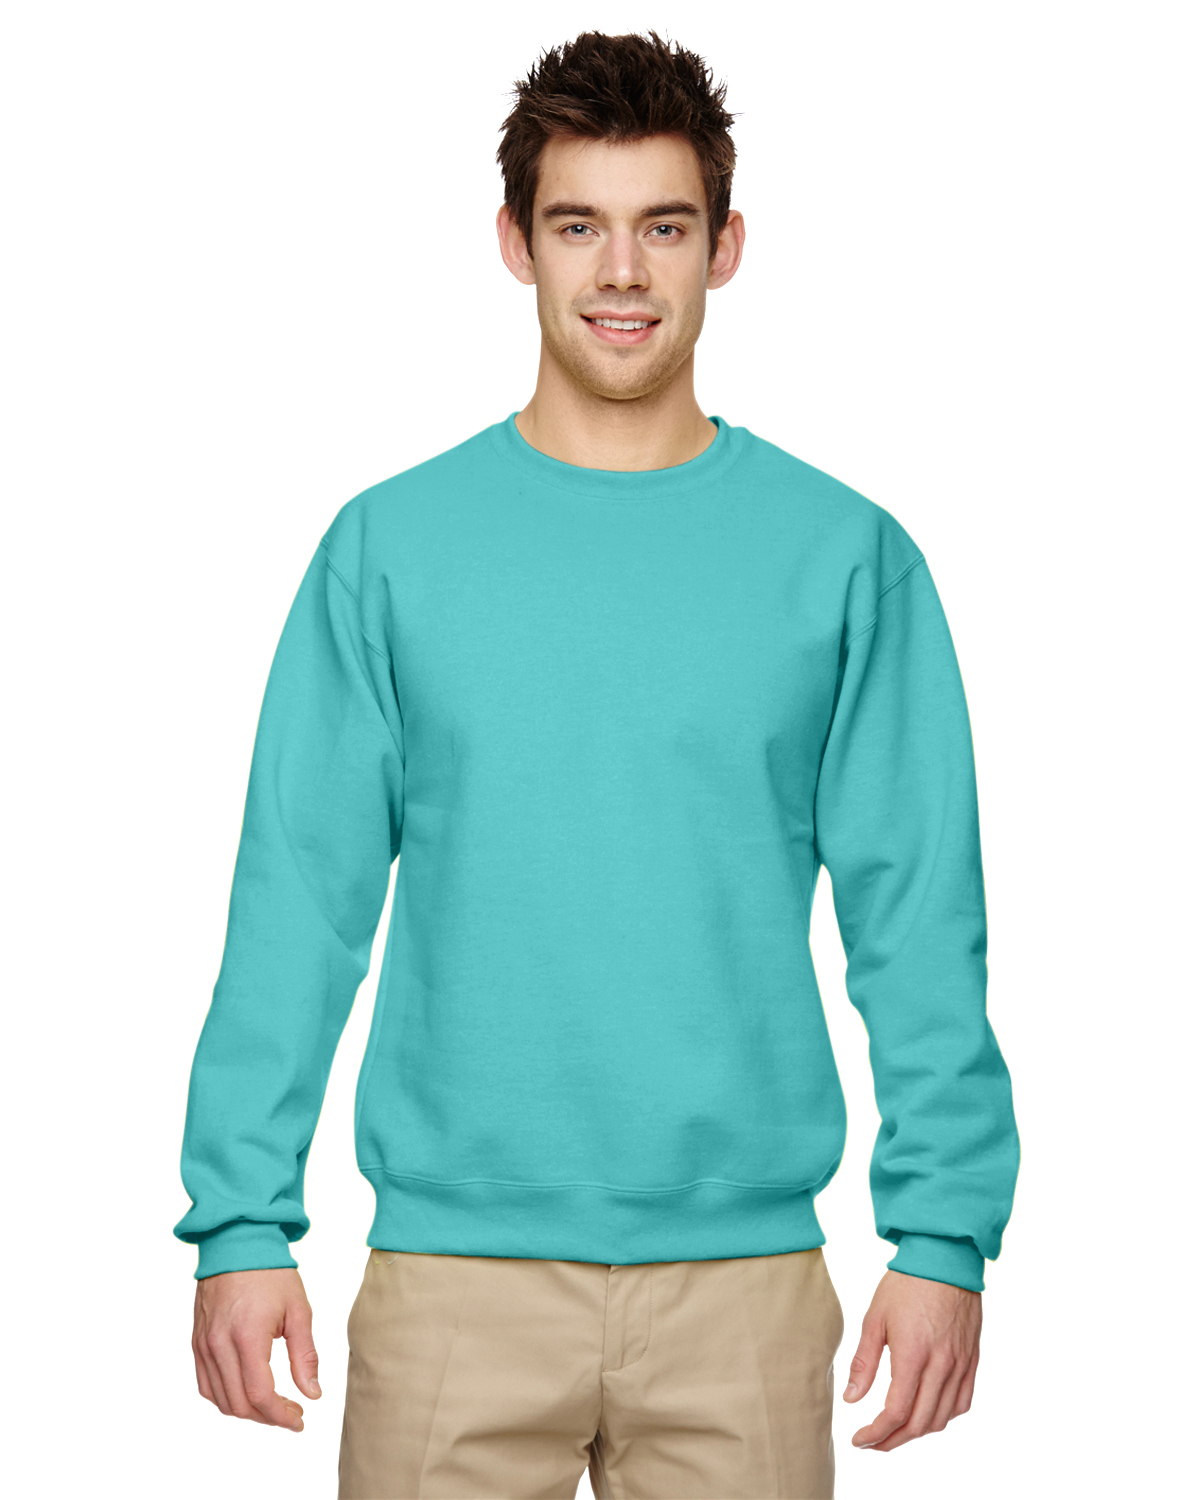 Find Men's Crew Neck Sweatshirts in a variety of colors and styles from zippered hoodies and pullover hoodies to comfy fleece crewneck sweatshirts.